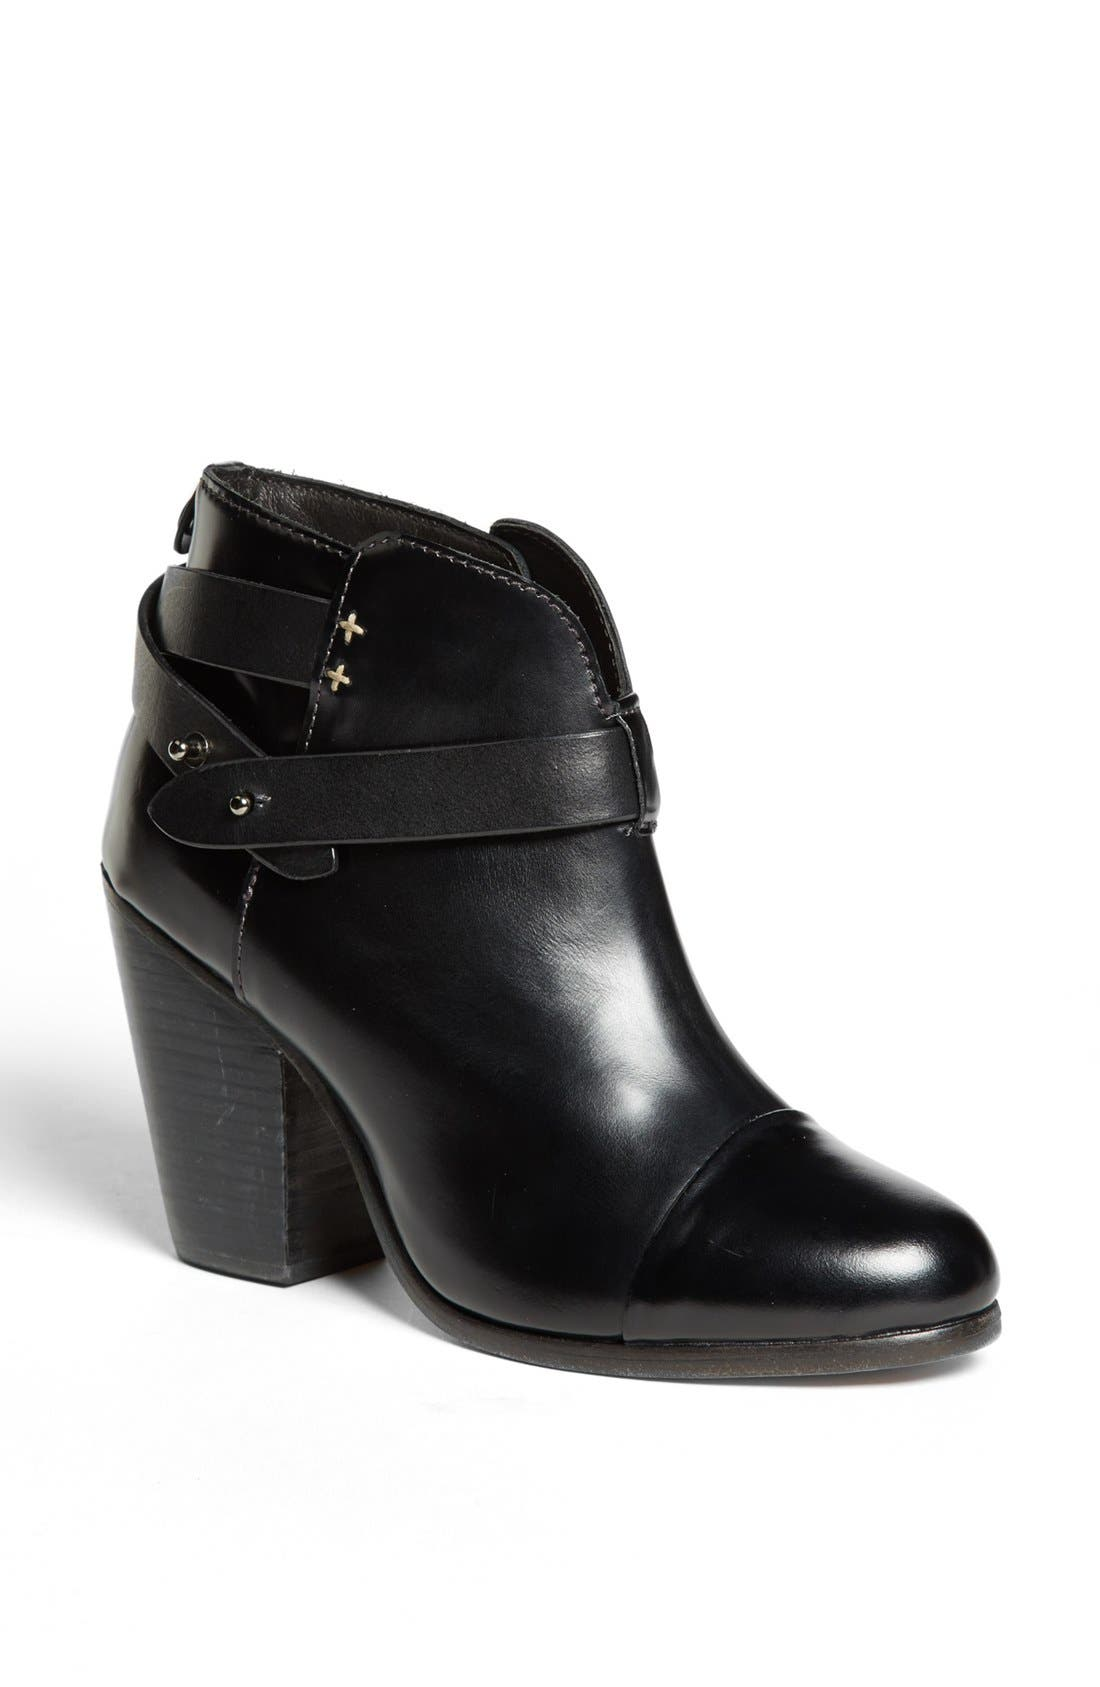 RAG & BONE, 'Harrow' Bootie, Main thumbnail 1, color, 001